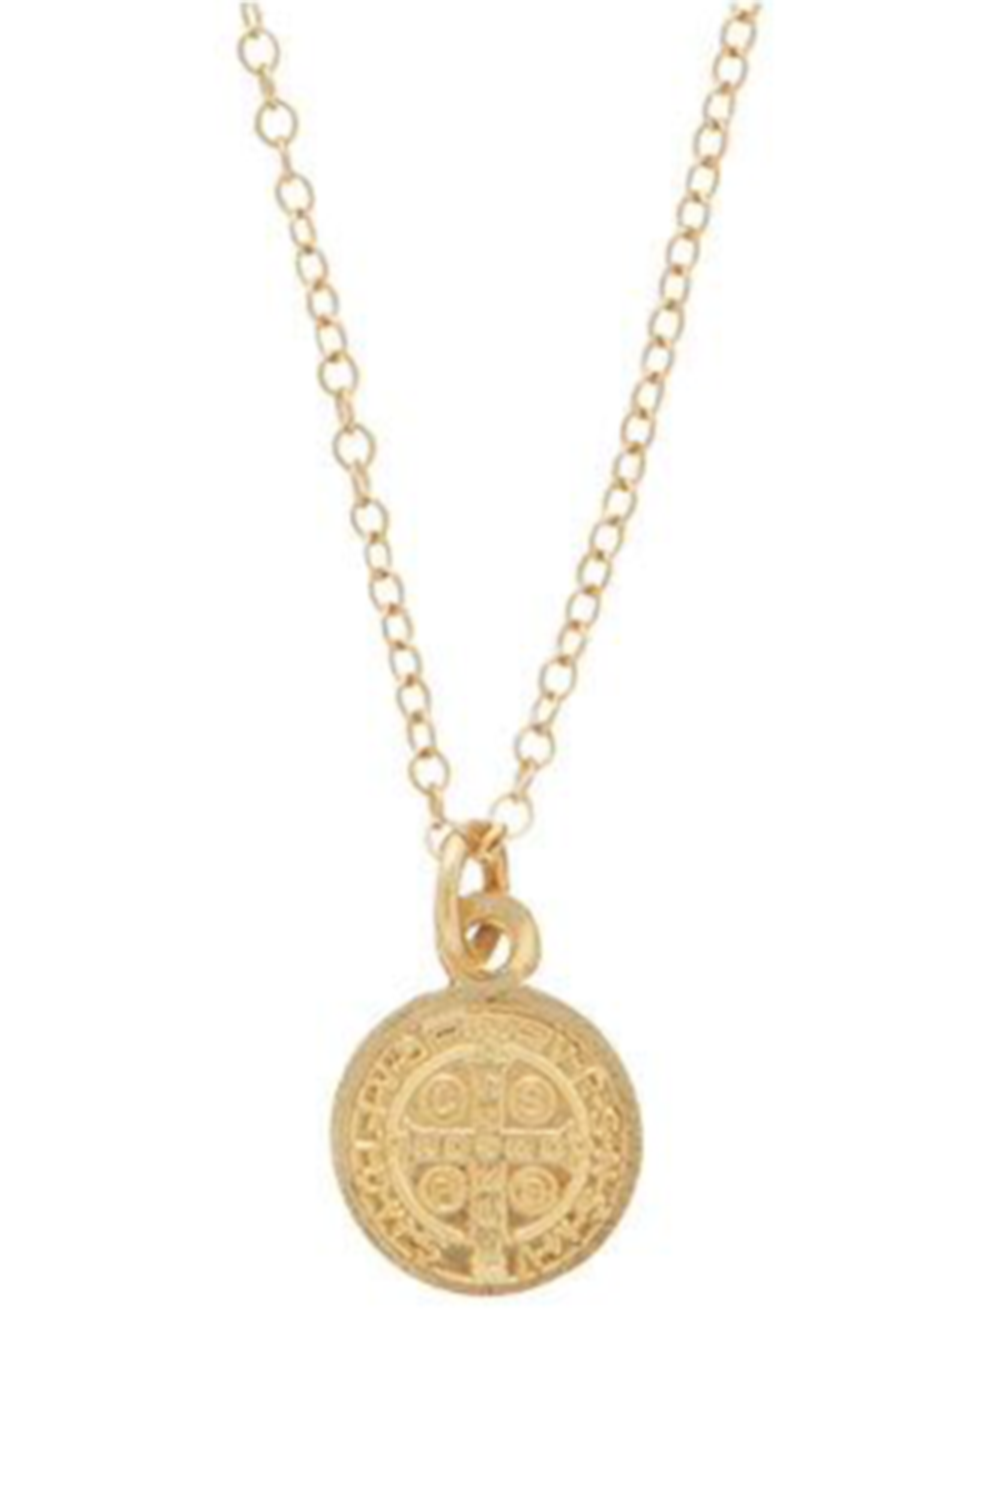 EN Small Blessing Charm Necklace - Gold